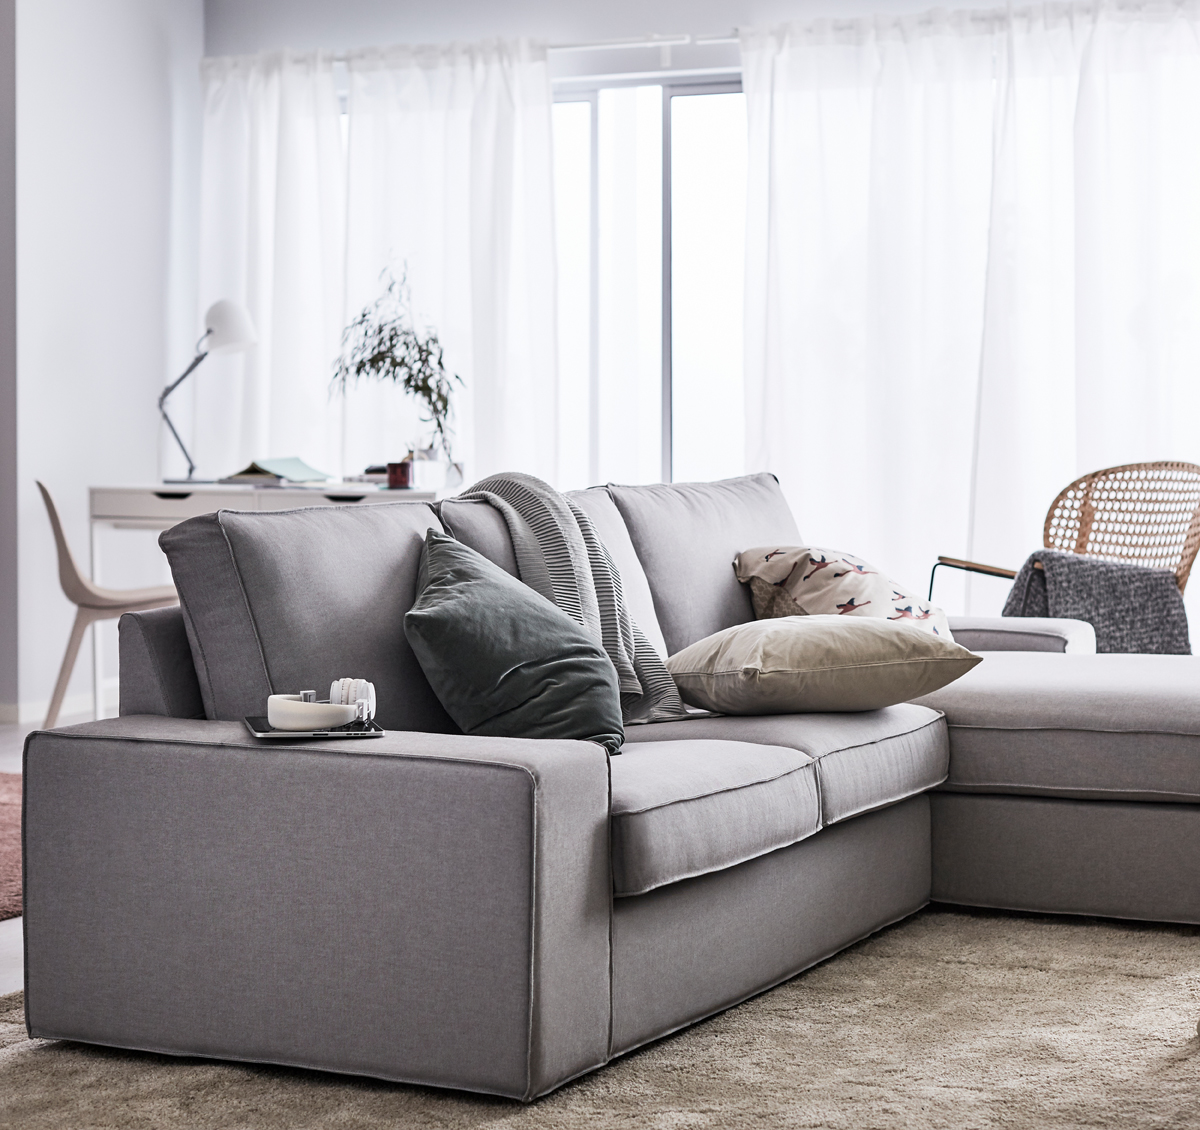 Grey Sectional KIVIK Sofa In A Beige And White Room, Paired With Neutral  Colour Cushions